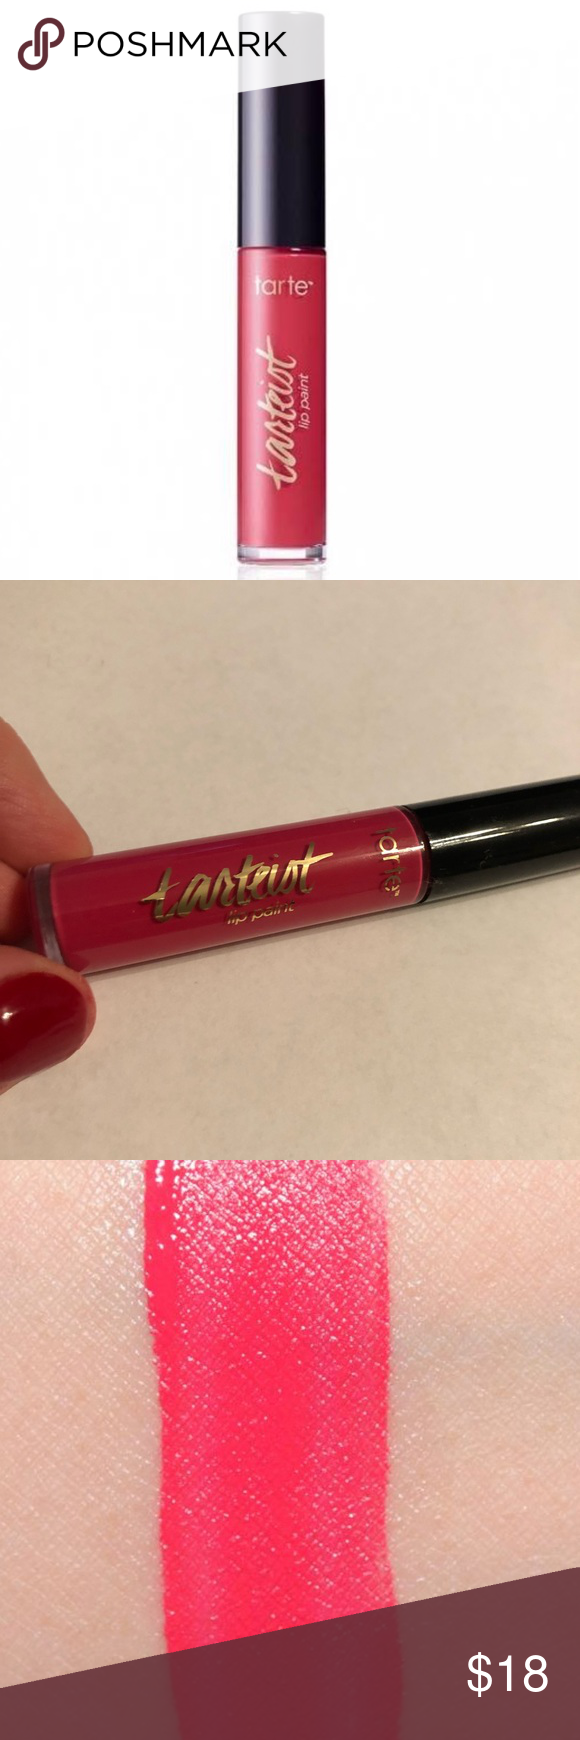 Photo of Tarte Tarteist Lip Paint In Selfish This was used for one swatch. From Tarte: Pa…